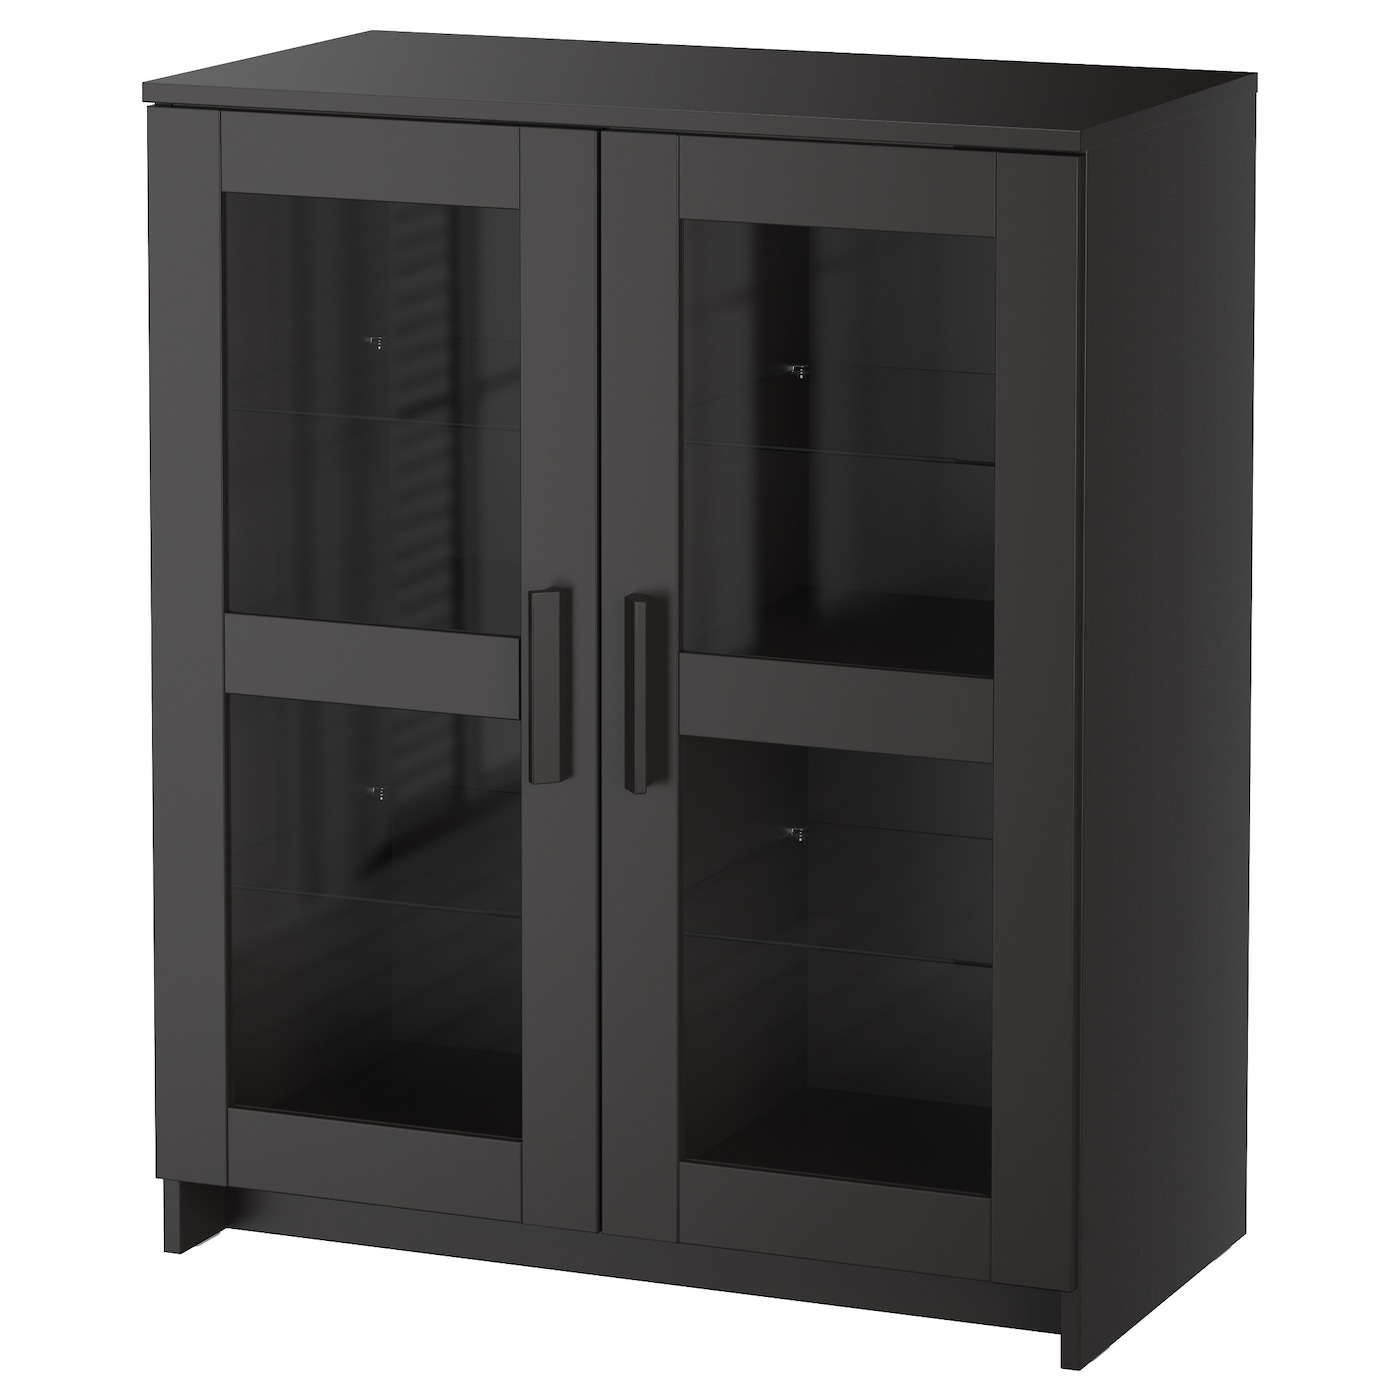 Lange Lage Kast.Lange Lage Kast Free Lage Kast Siena Cm Witbruin With Lange Lage